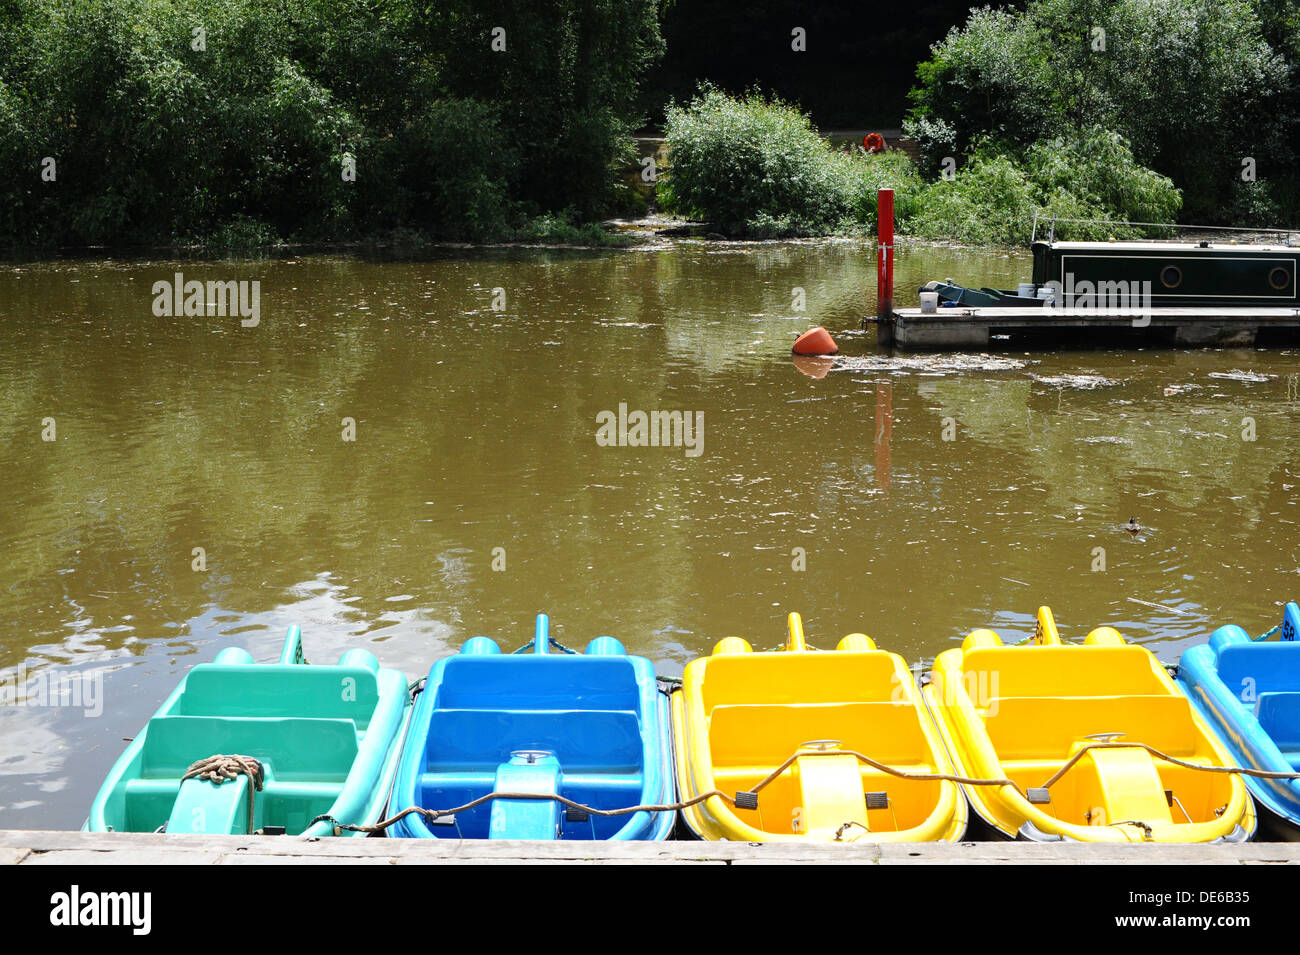 Pedals boats for hire on the River Dee, Chester. Stock Photo